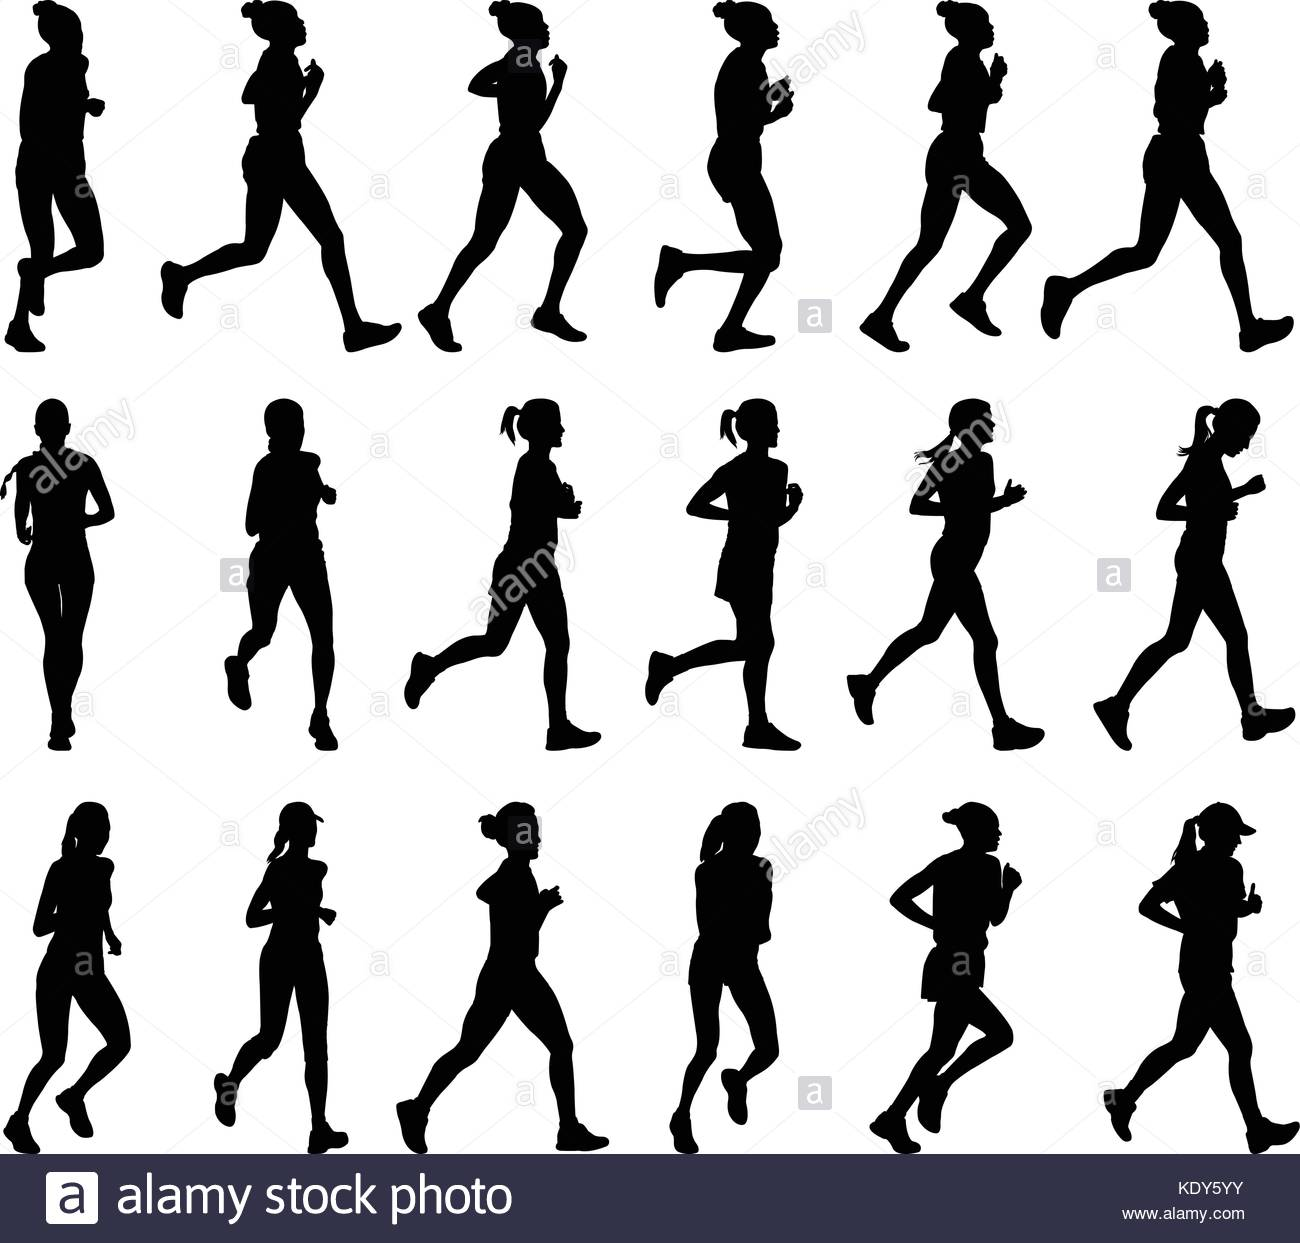 Female Runners Silhouette